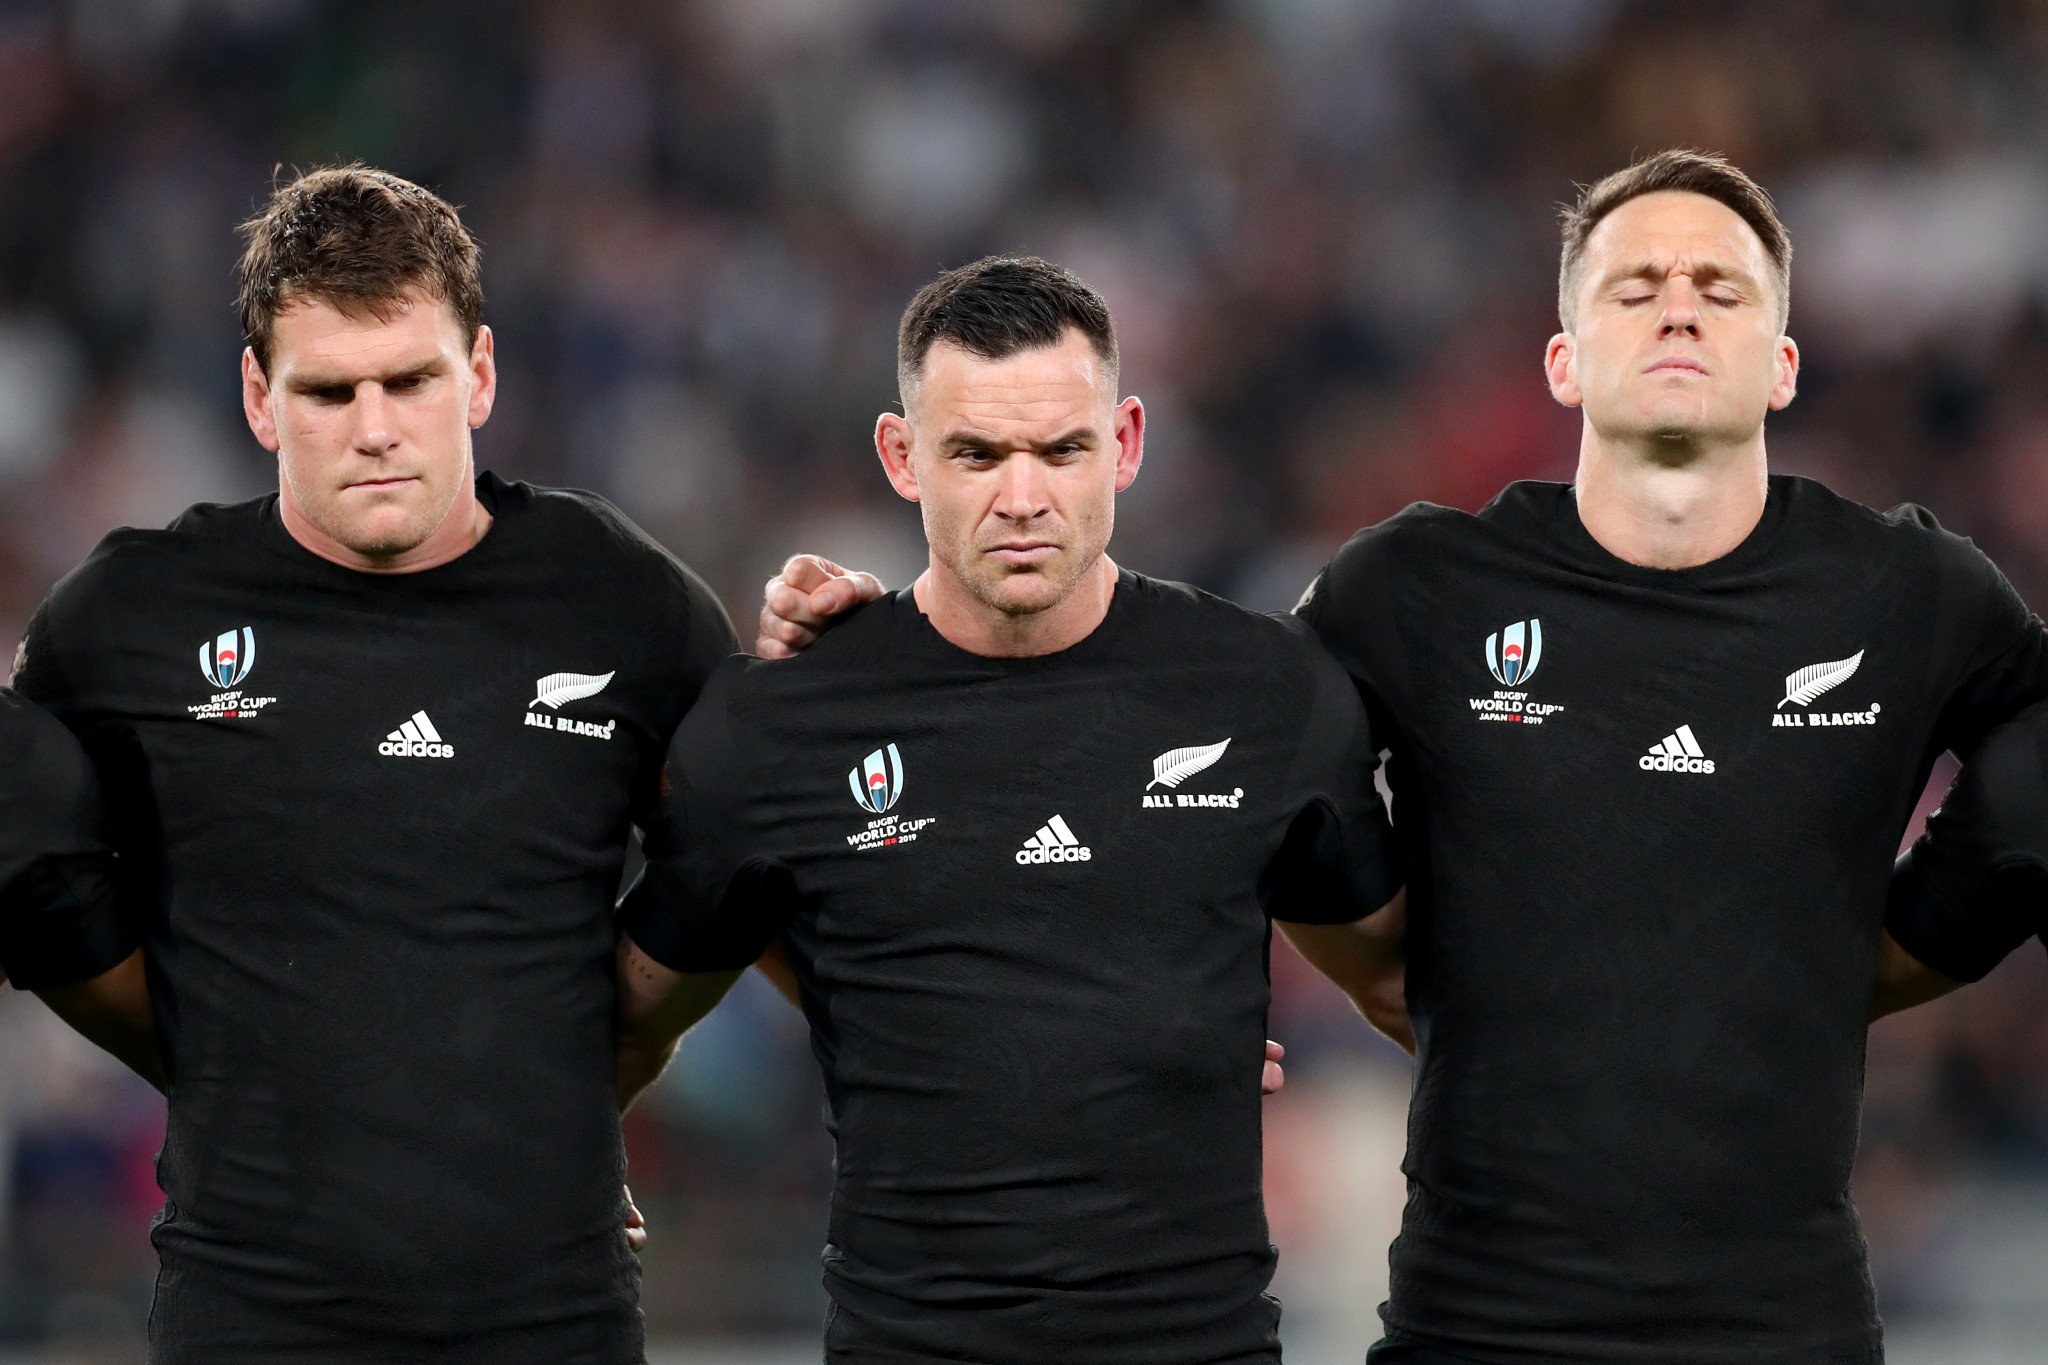 New Zealand Rugby's North-South match in doubt as coronavirus cases rise